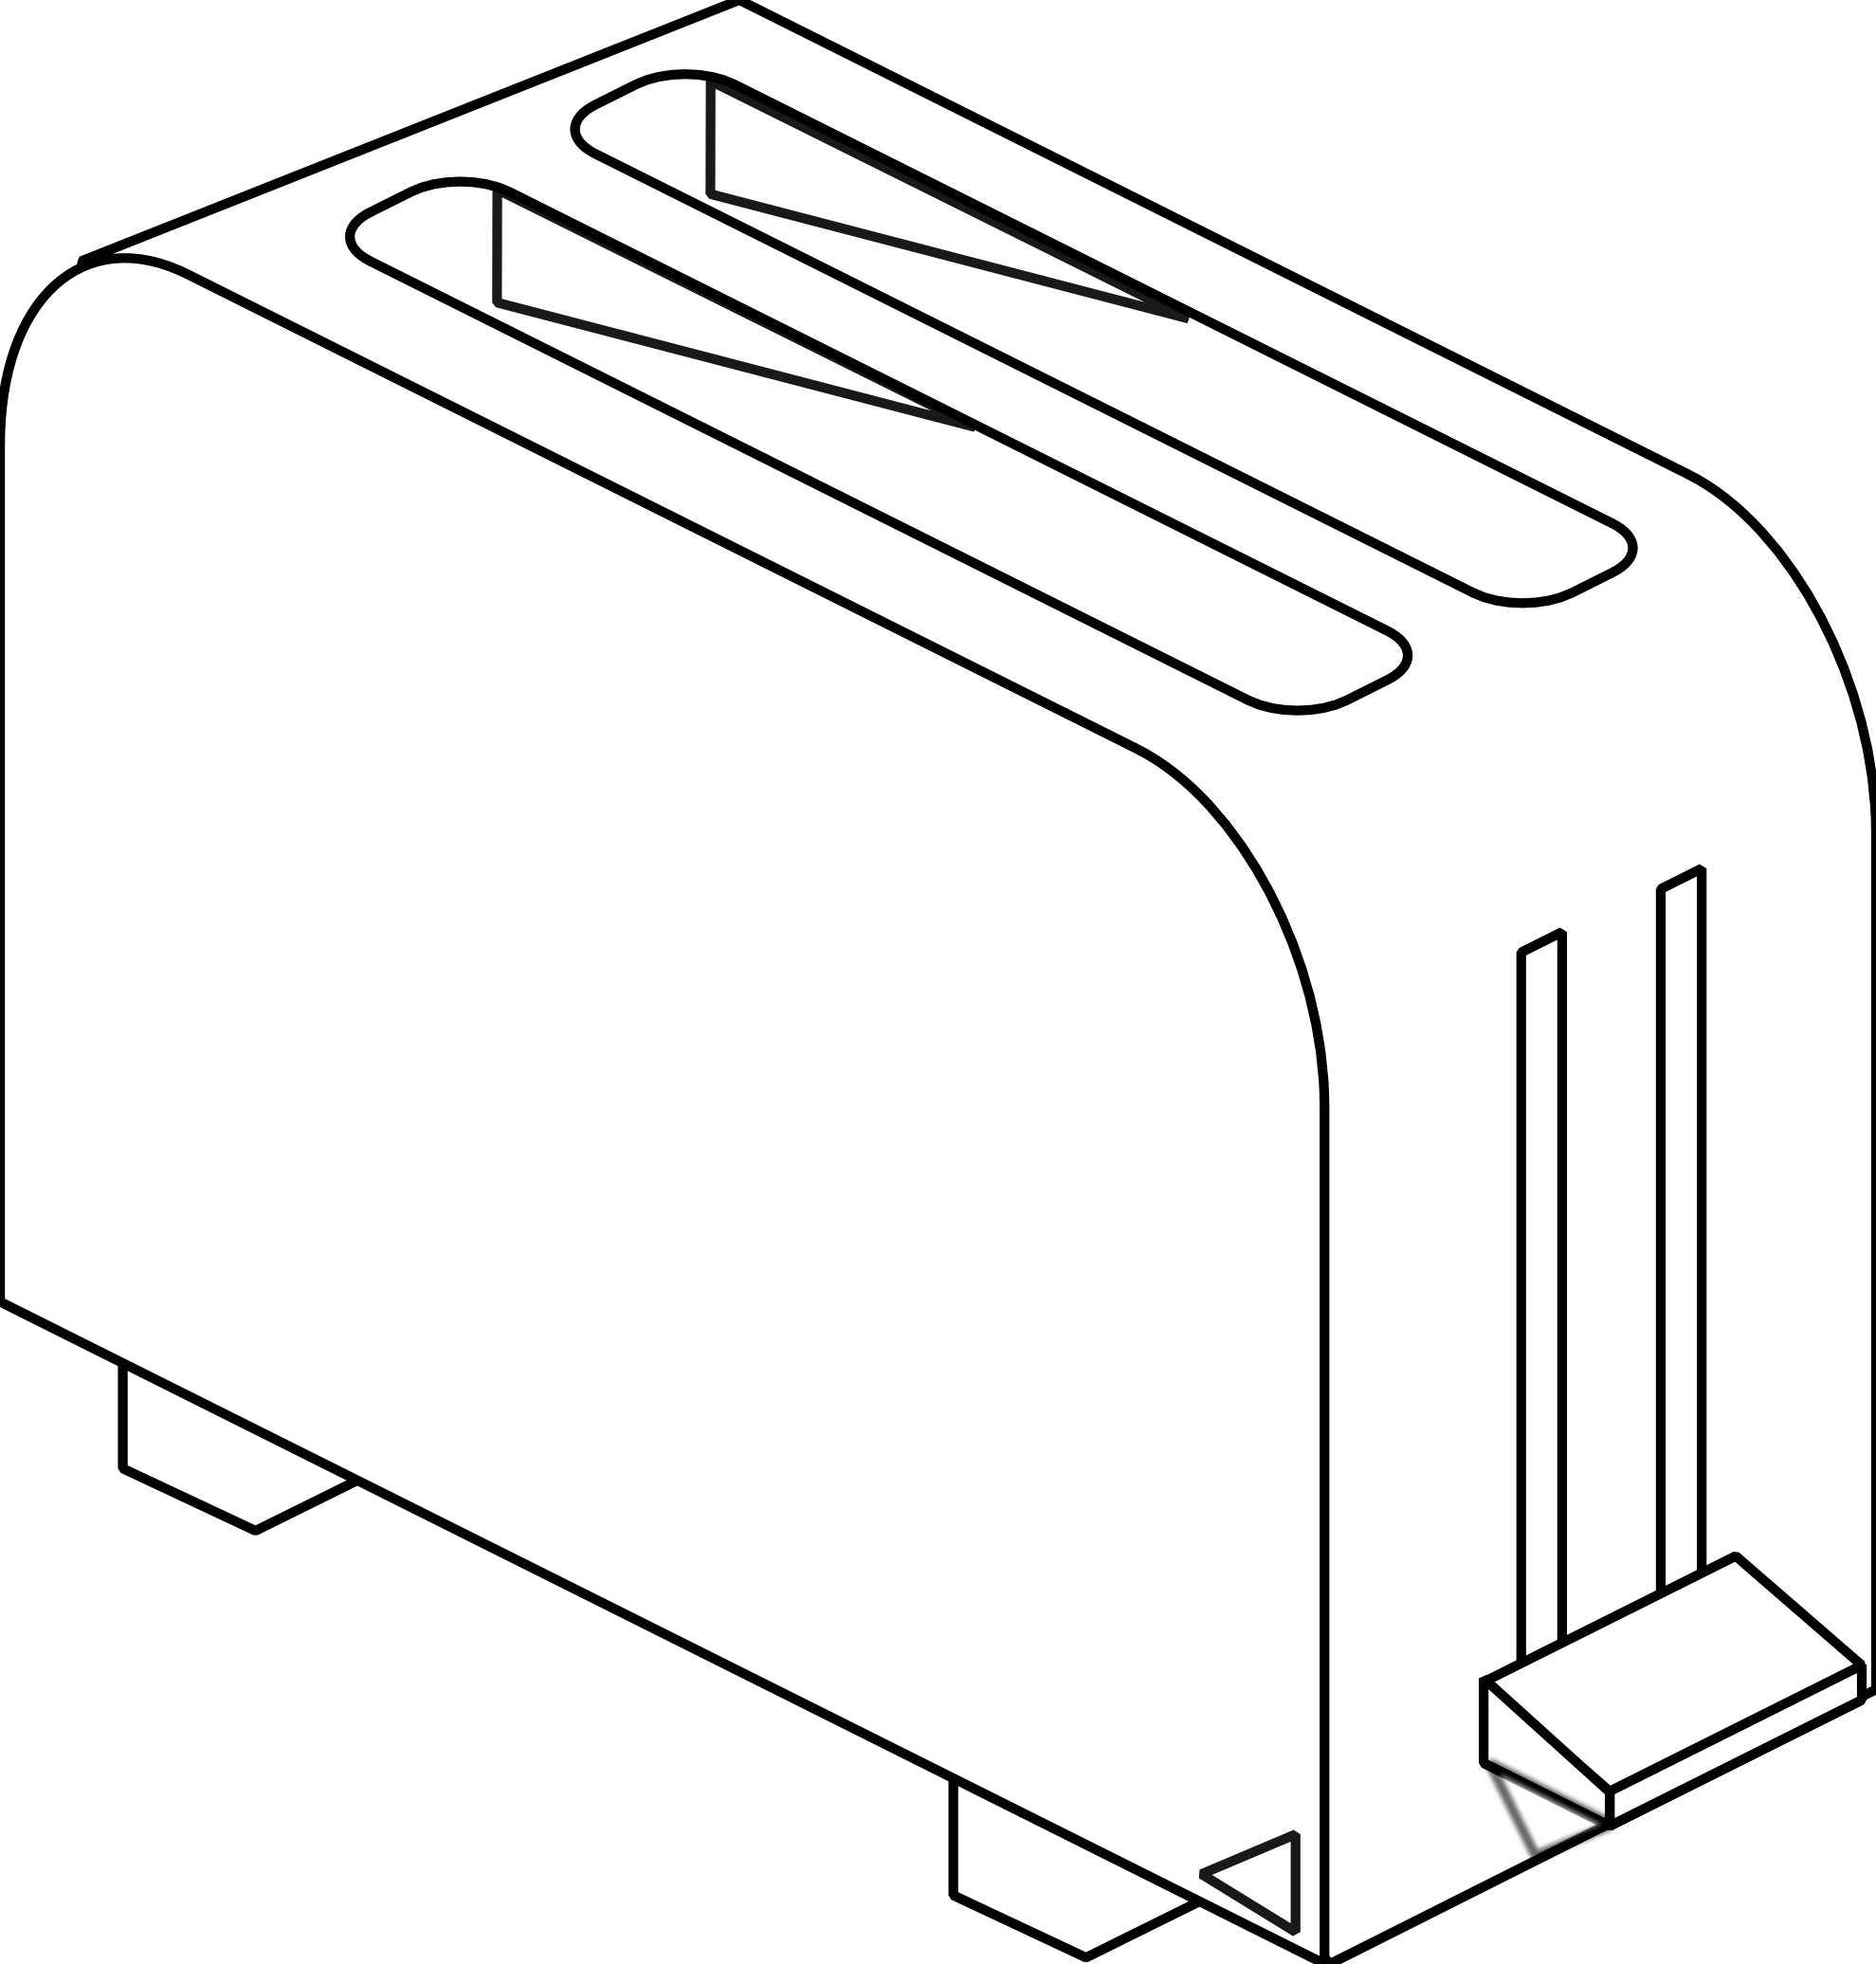 Toaster clipart sketch. Black and white coloring